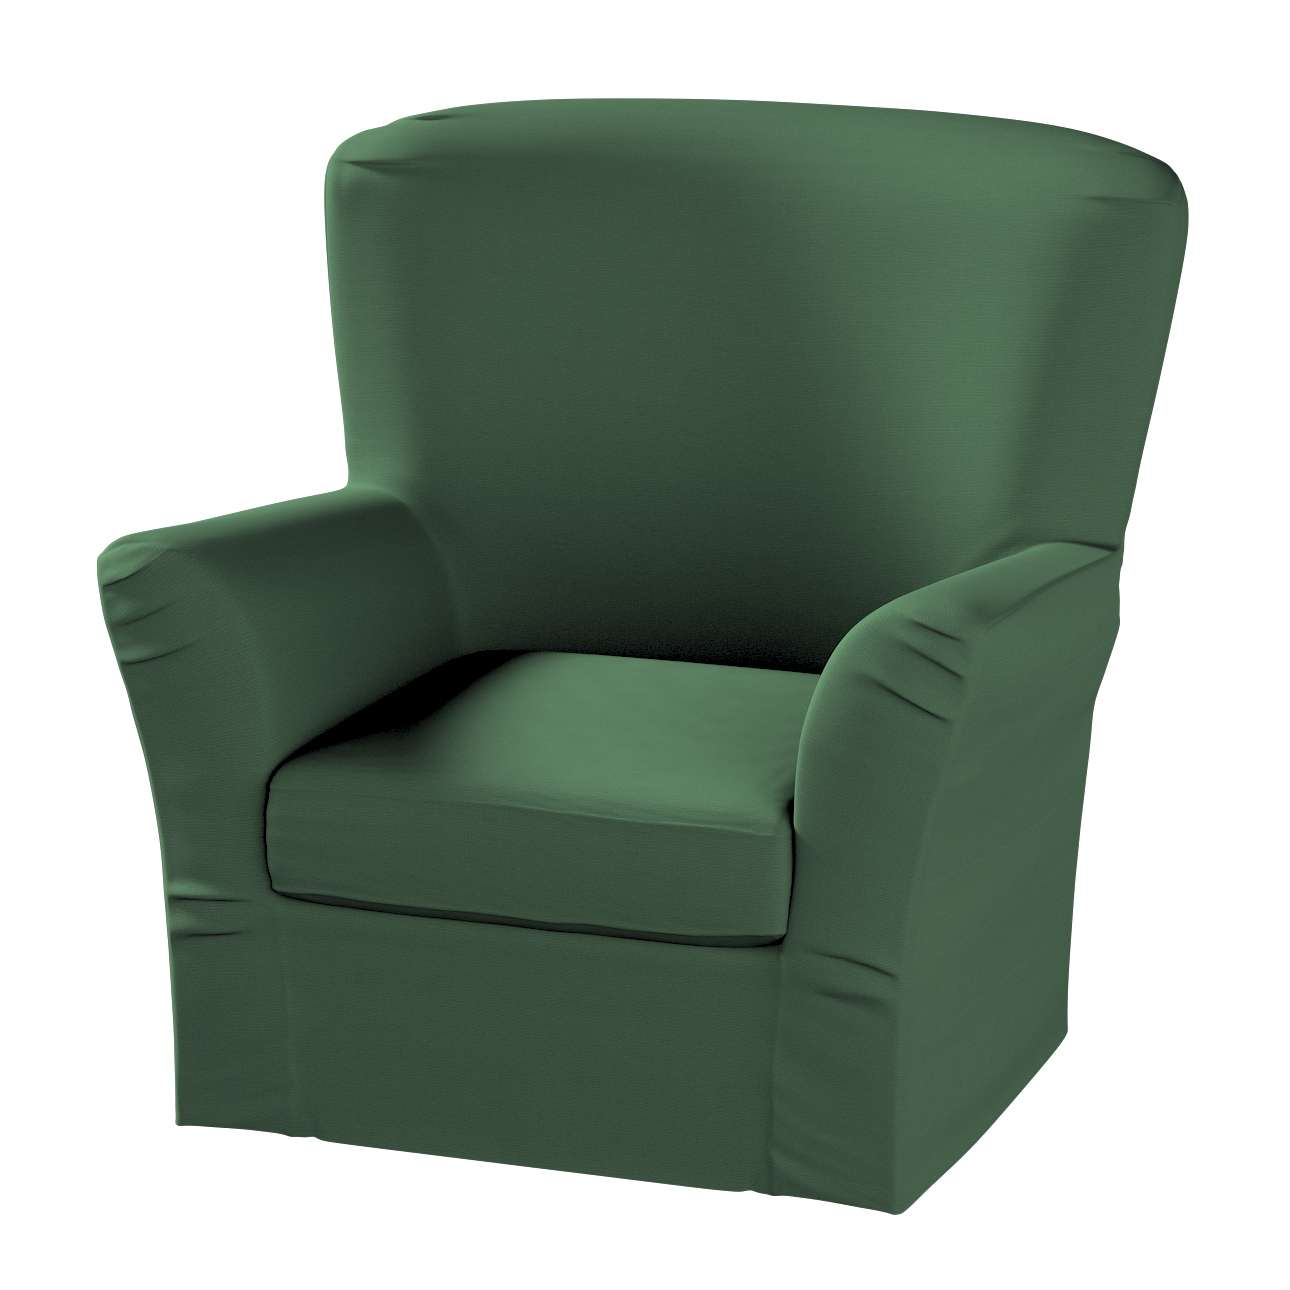 Tomelilla armchair  Tomelilla armchair in collection Cotton Panama, fabric: 702-06